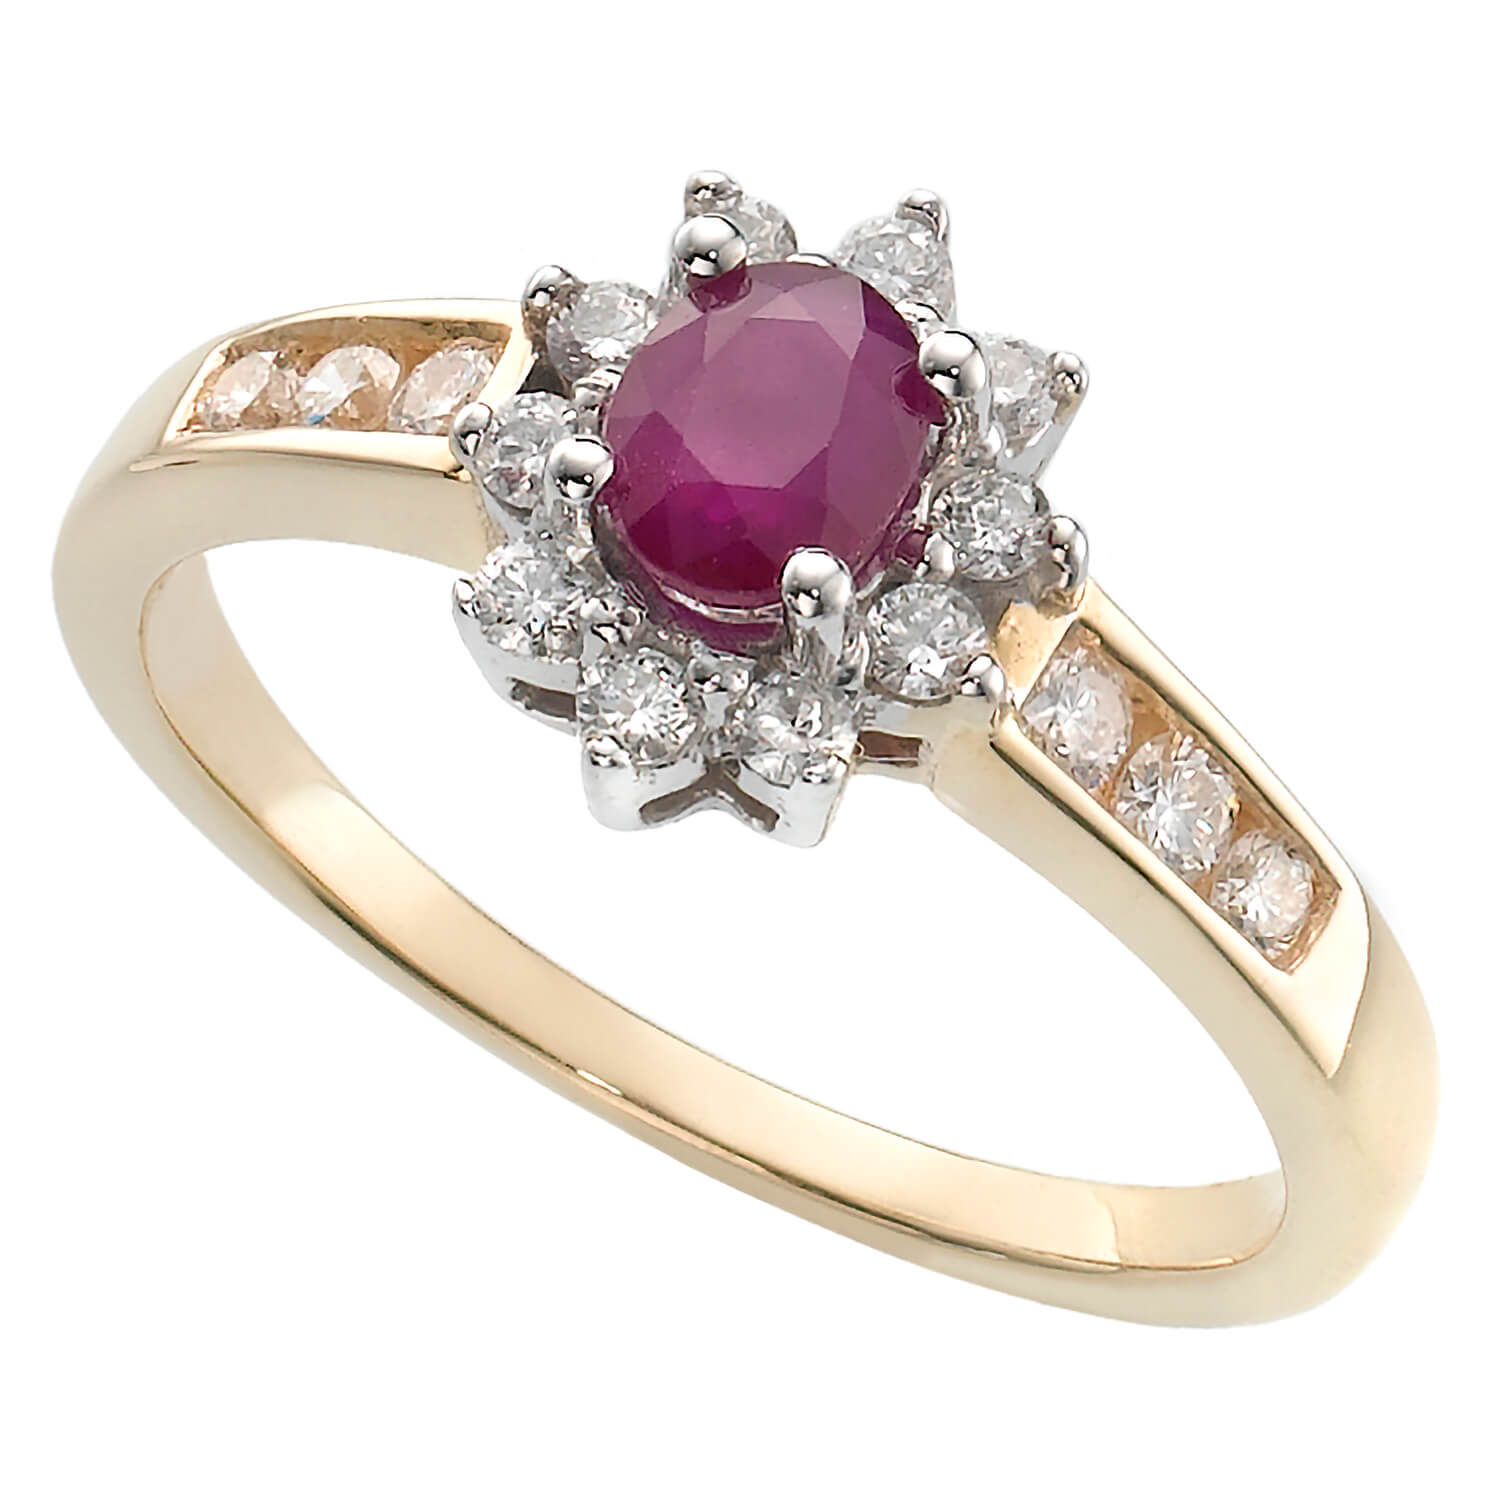 9ct two colour gold ruby and 0.33 carat diamond cluster ring